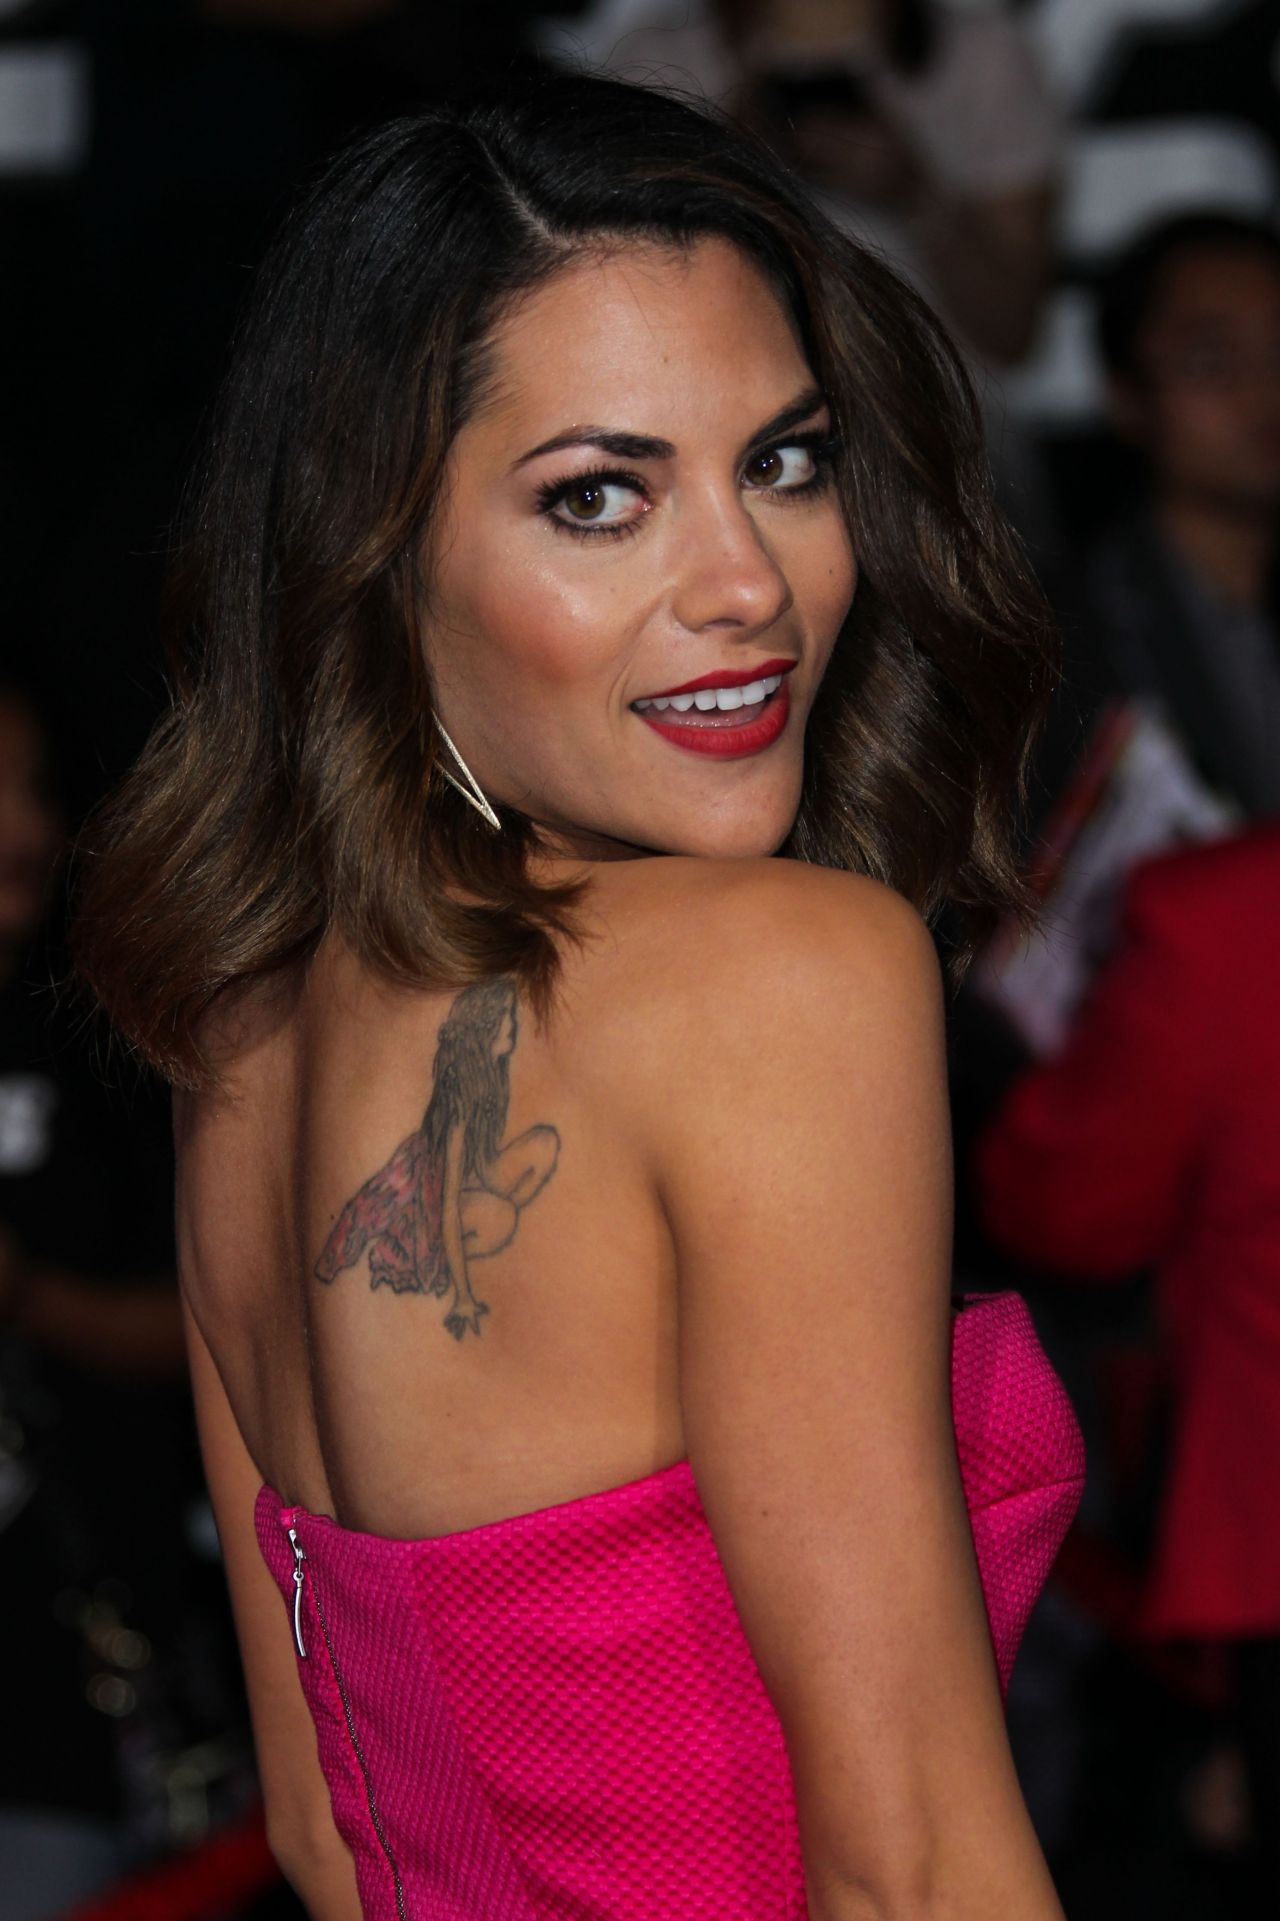 Inbar Lavi on Red Carpet – 'Need For Speed' Premiere in Hollywood